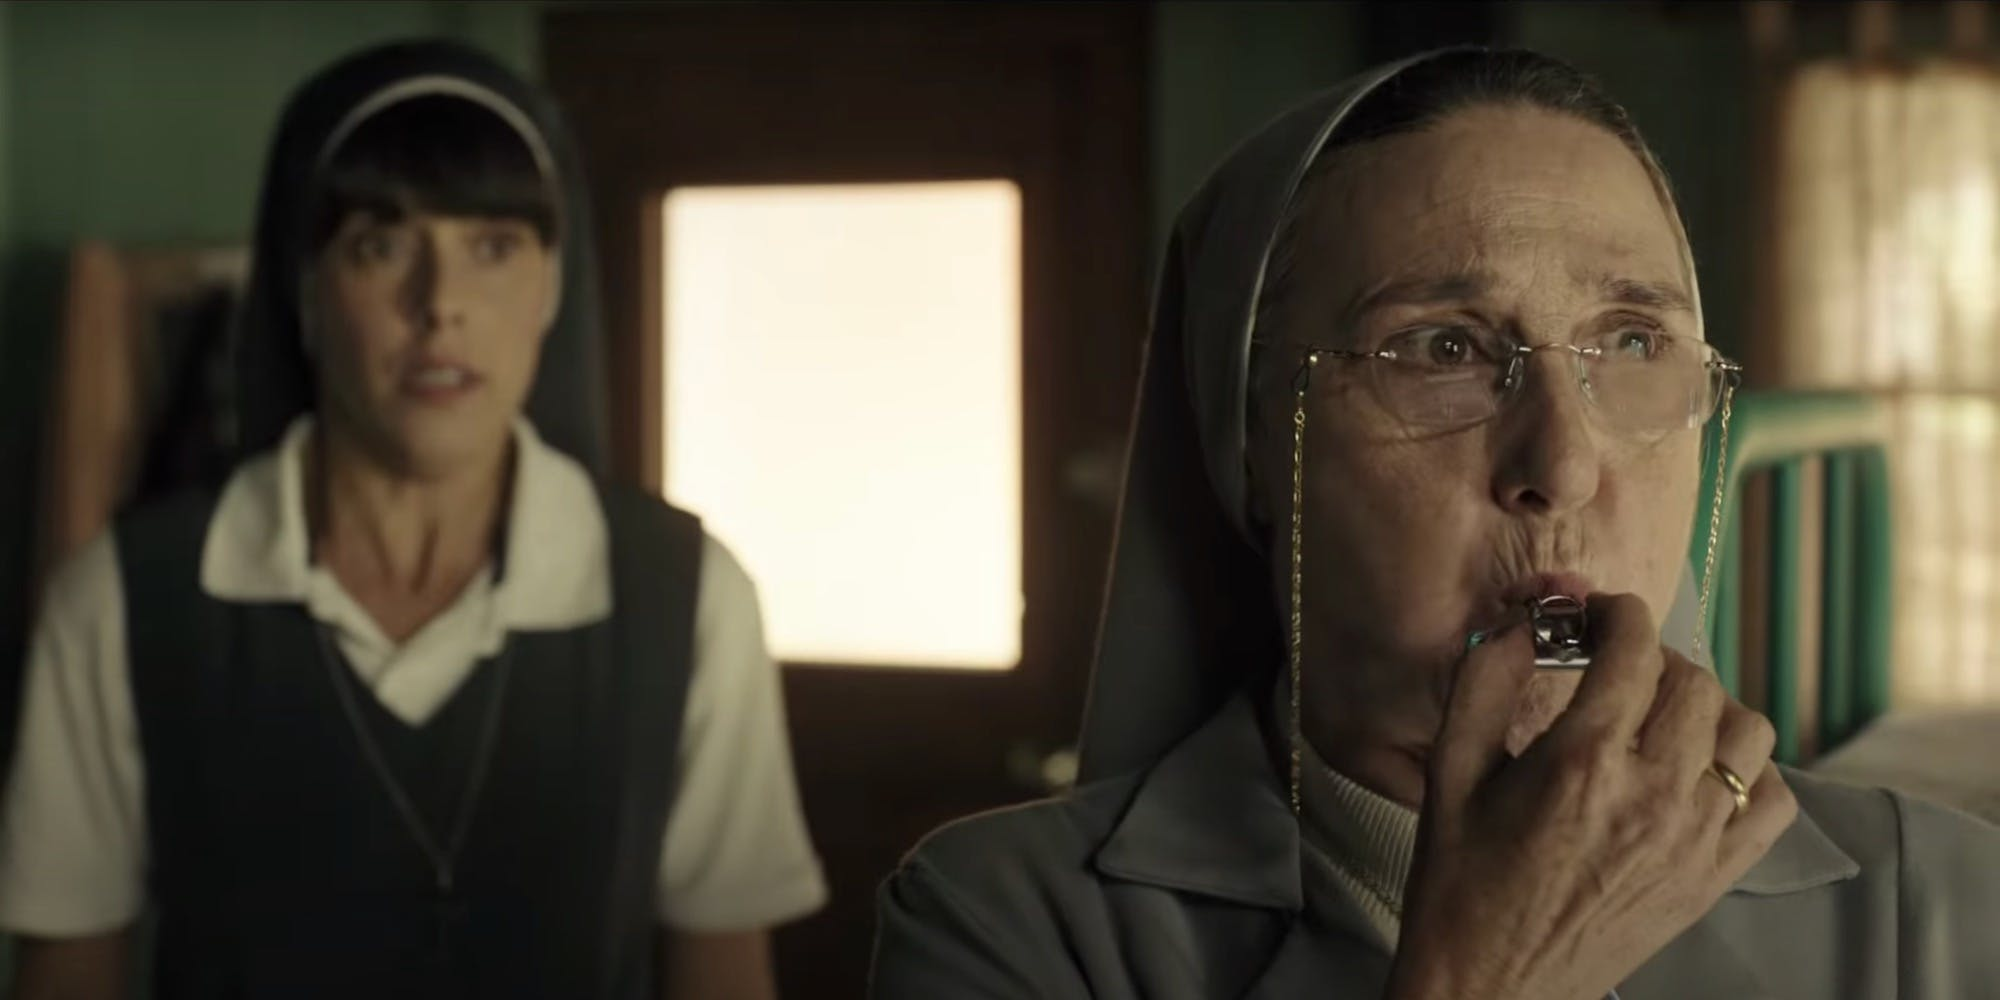 Still from the movie Holy Camp! on Netflix showing a nun blowing a whistle.